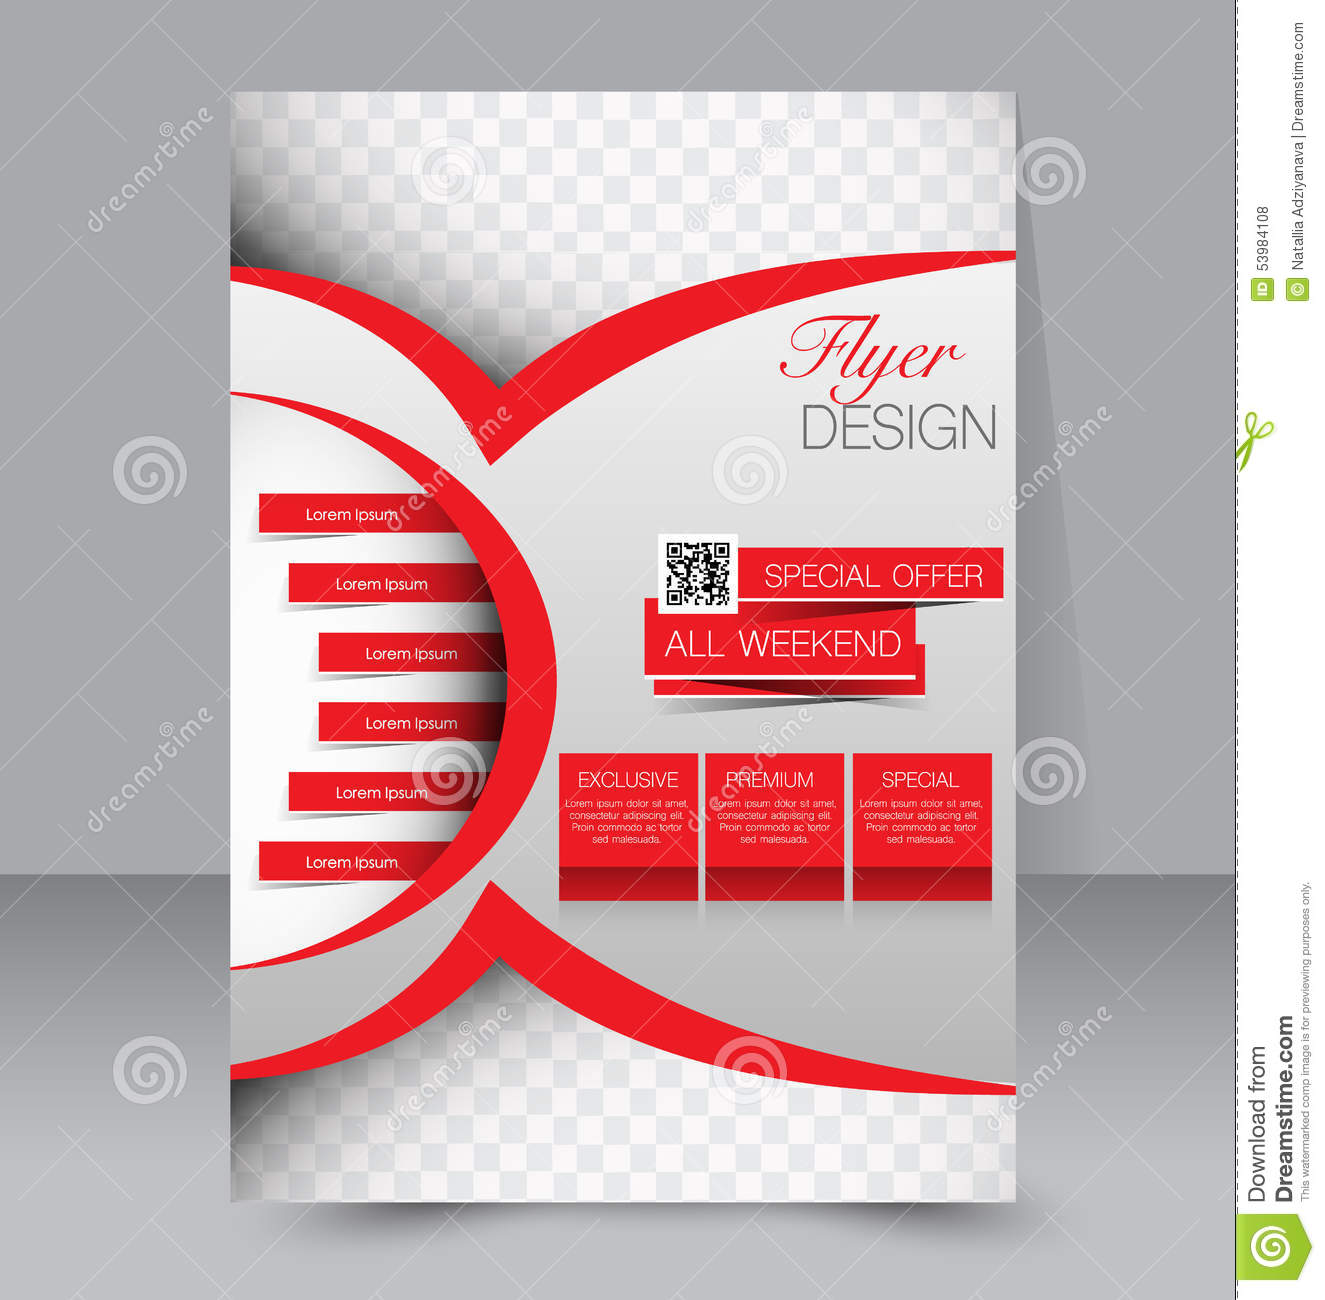 Poster design vector download - Template For Poster Design Free Download